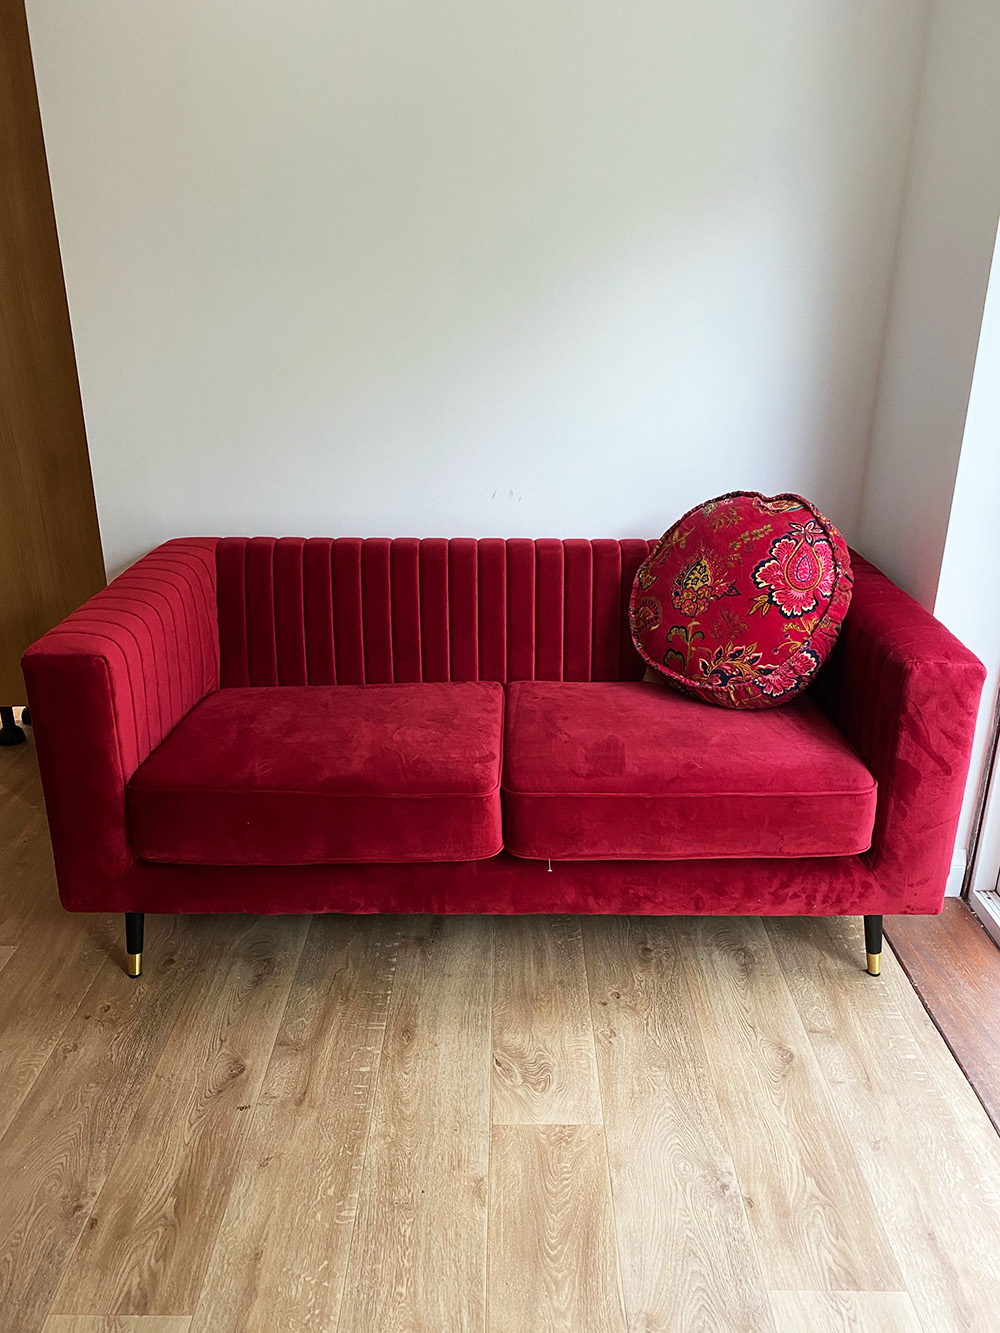 Red Slender sofa in cosy interior